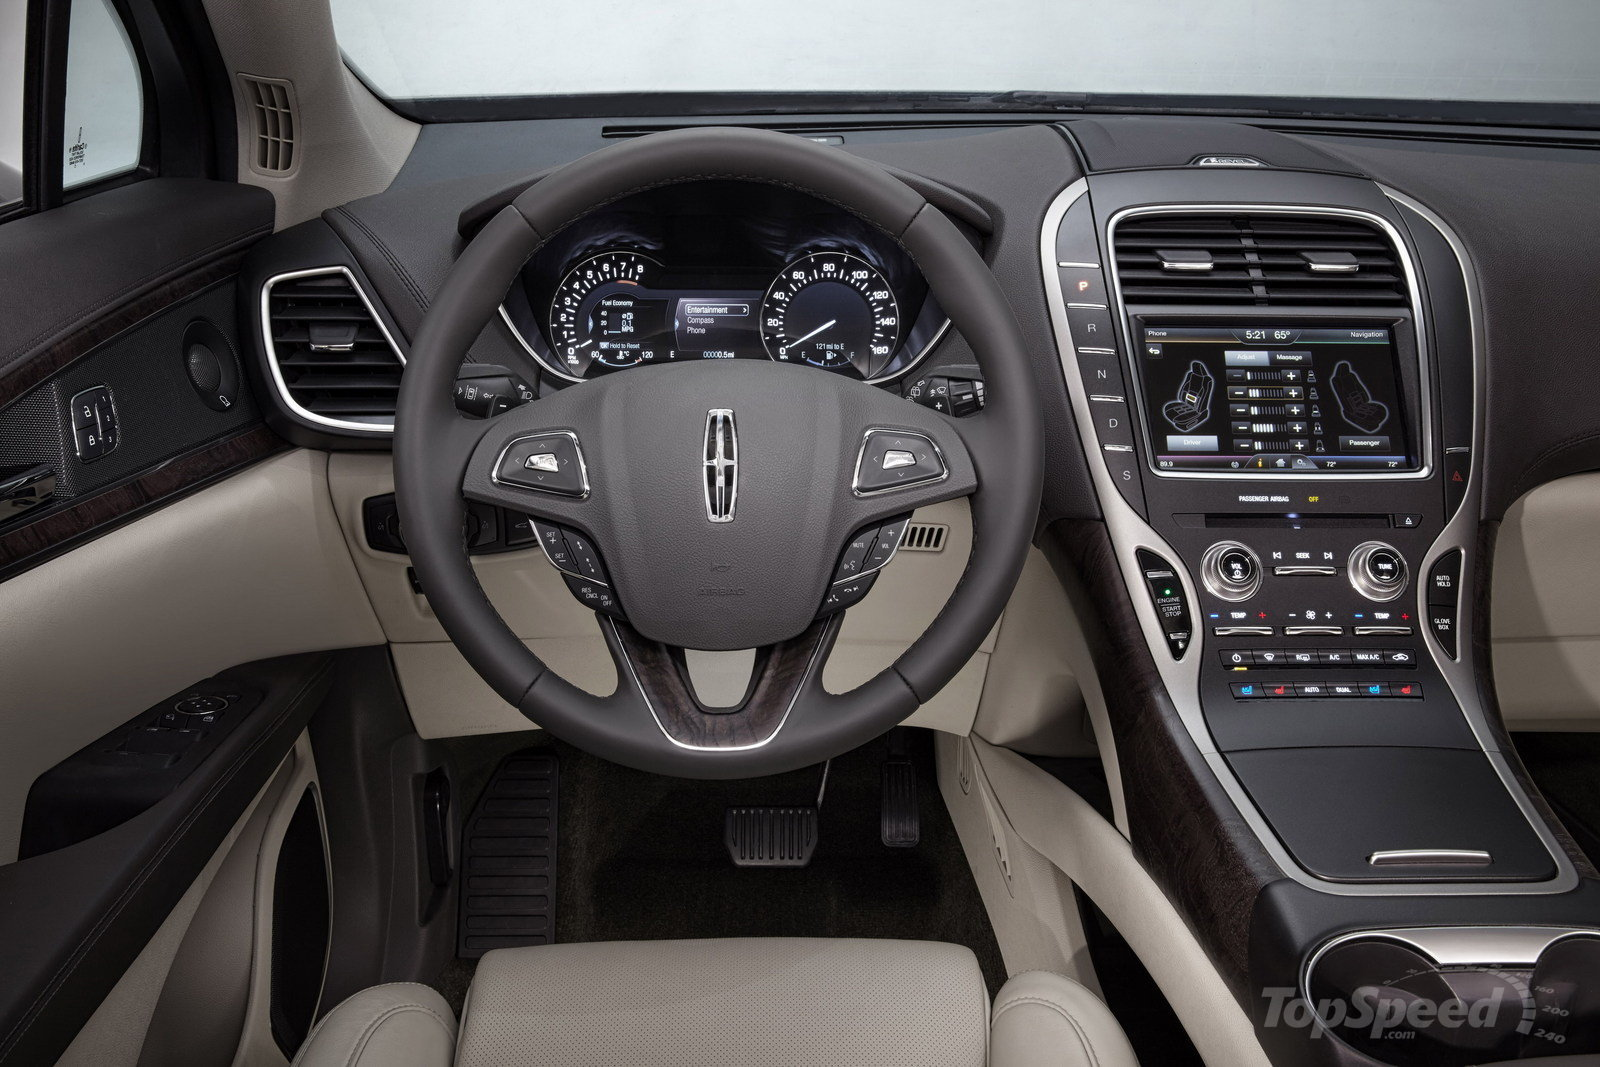 The All New 2016 Lincoln Mkx Best Review Rating Price Aureliegimp974